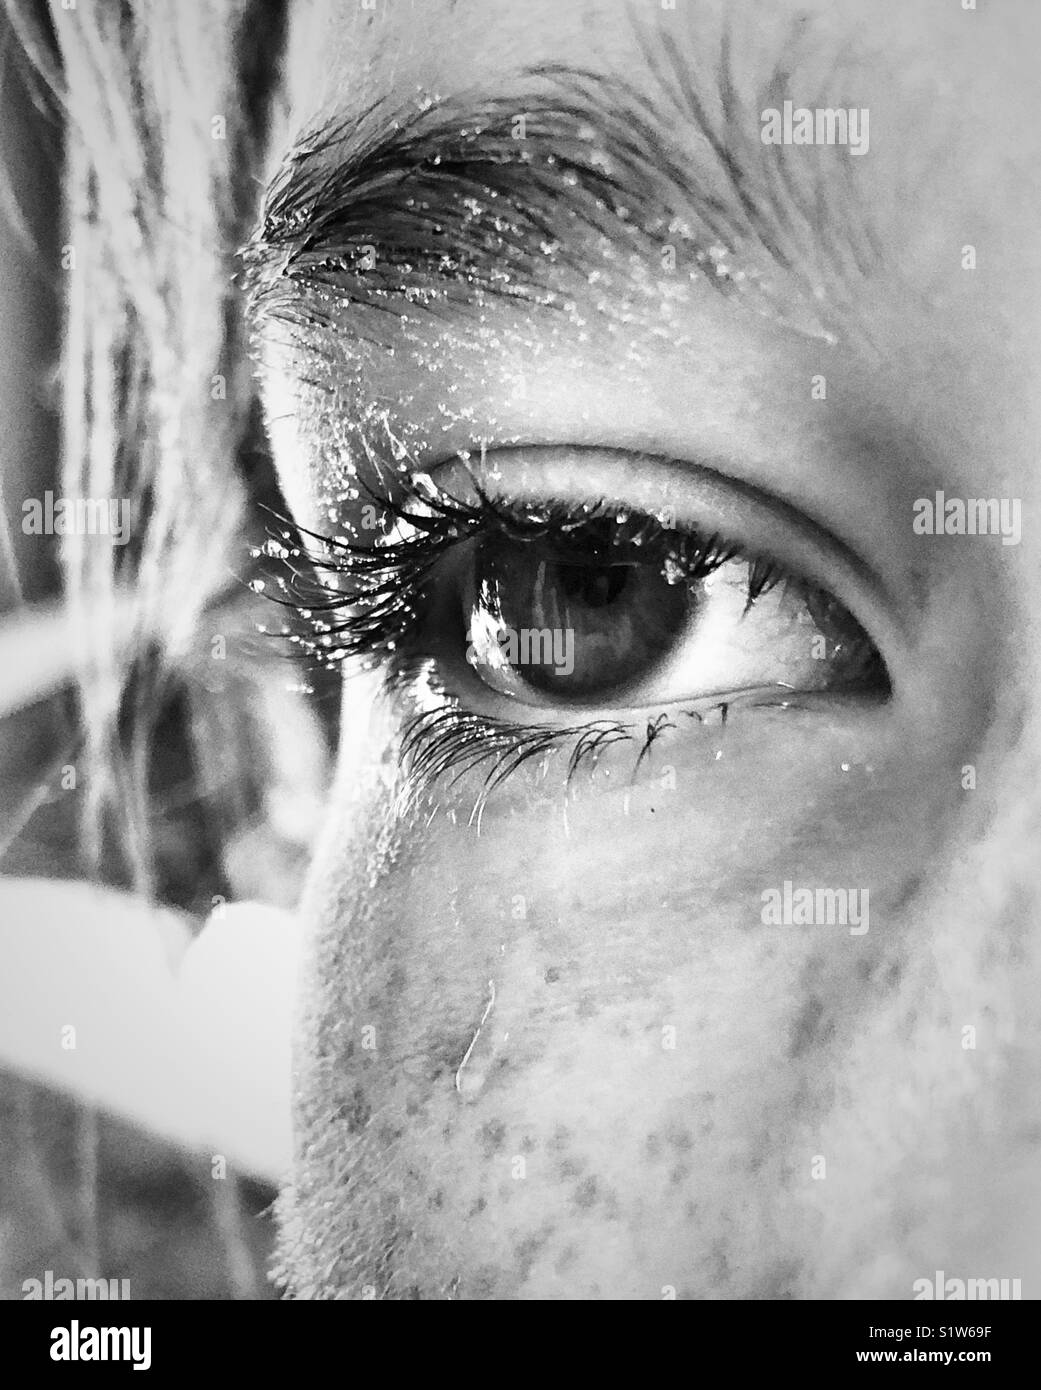 Closeup of girl's eye and partial face covered in water droplets that look like sweat or tears - Stock Image